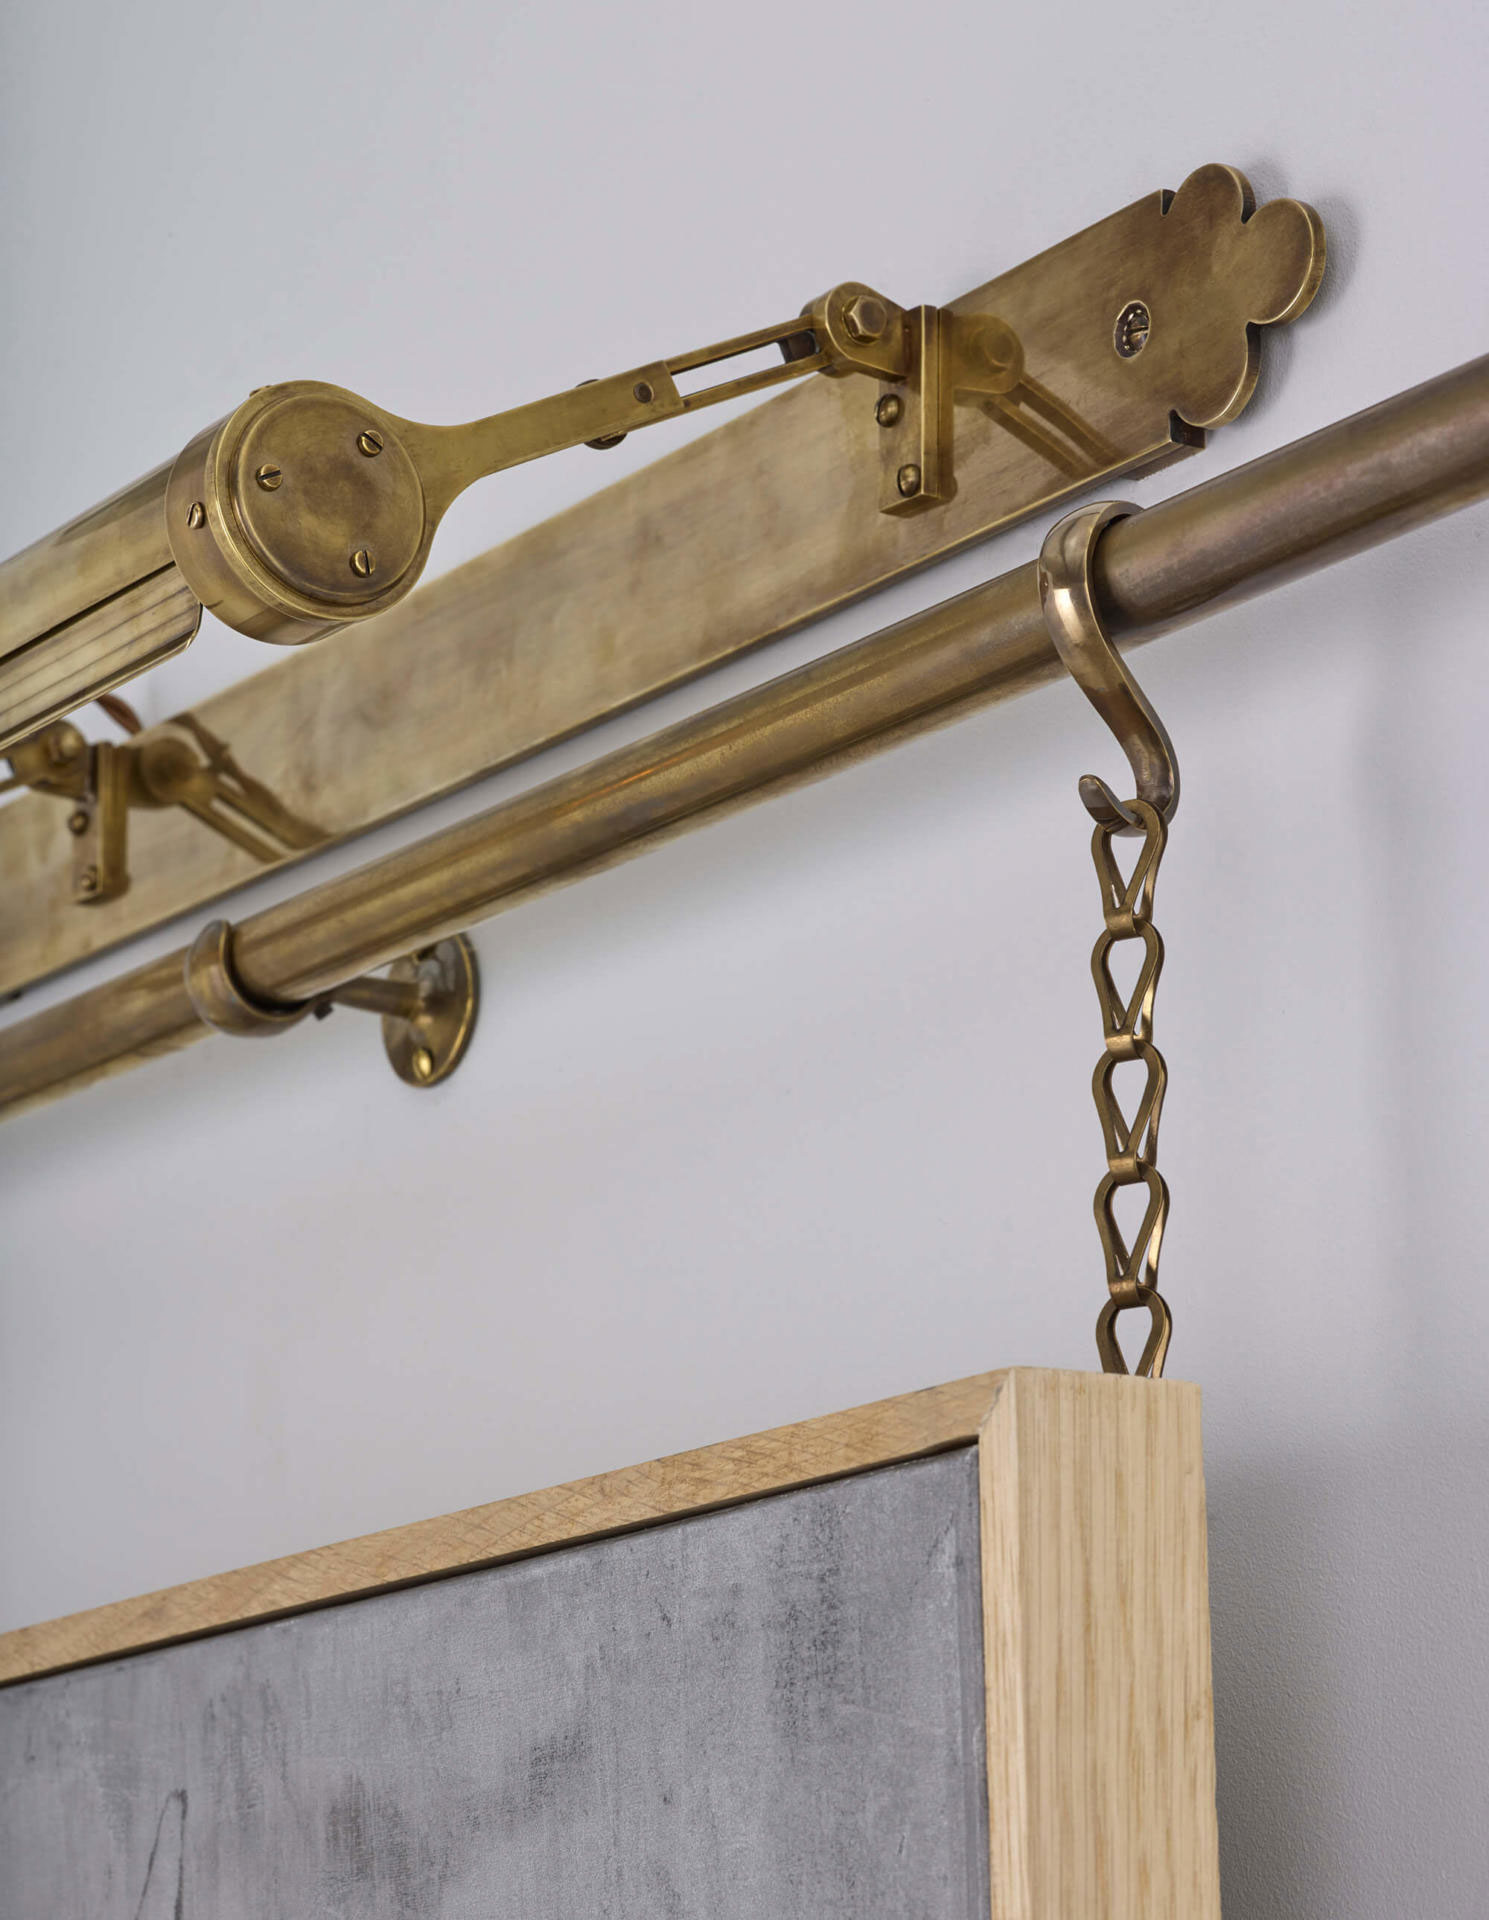 Brass picture rail and lighting